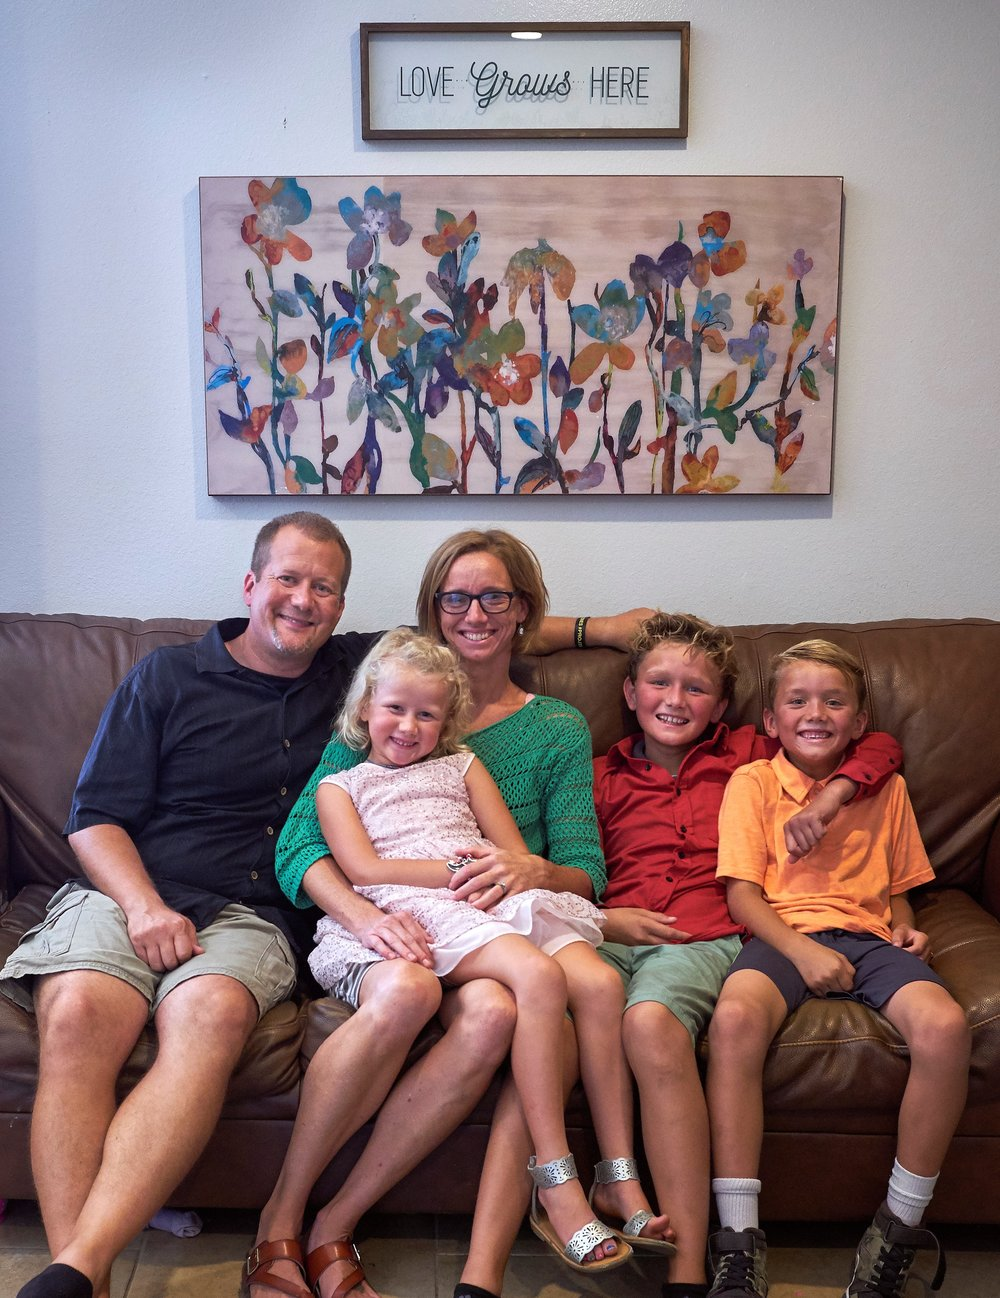 The Landis family provides safety and dependability for kiddos in need.